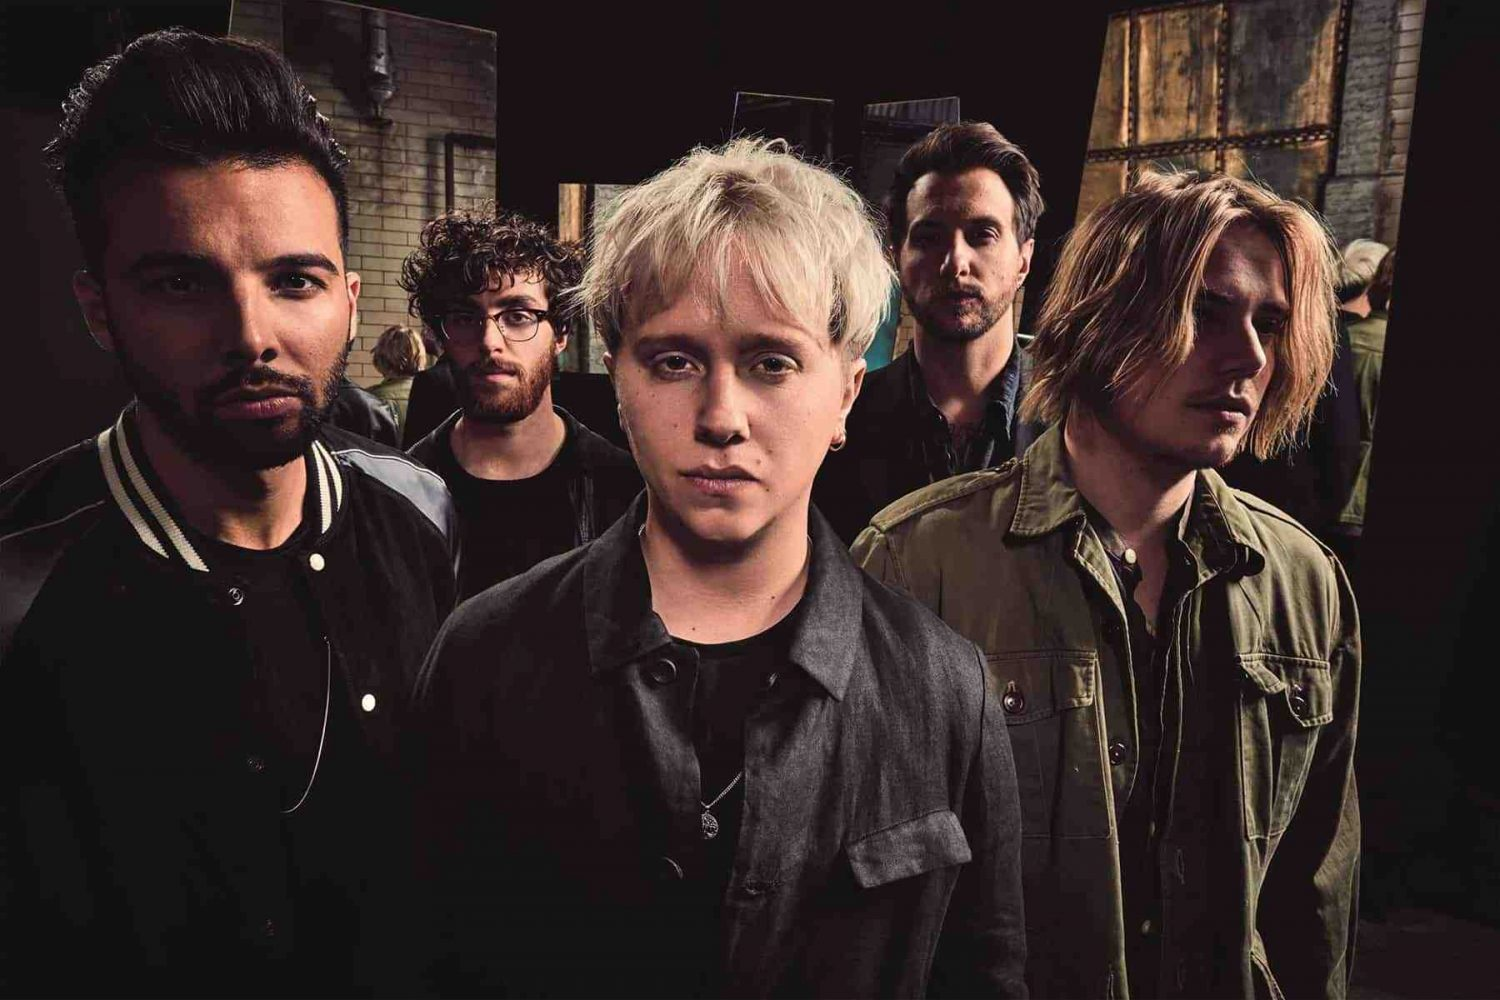 Nothing But Thieves have announced a November tour